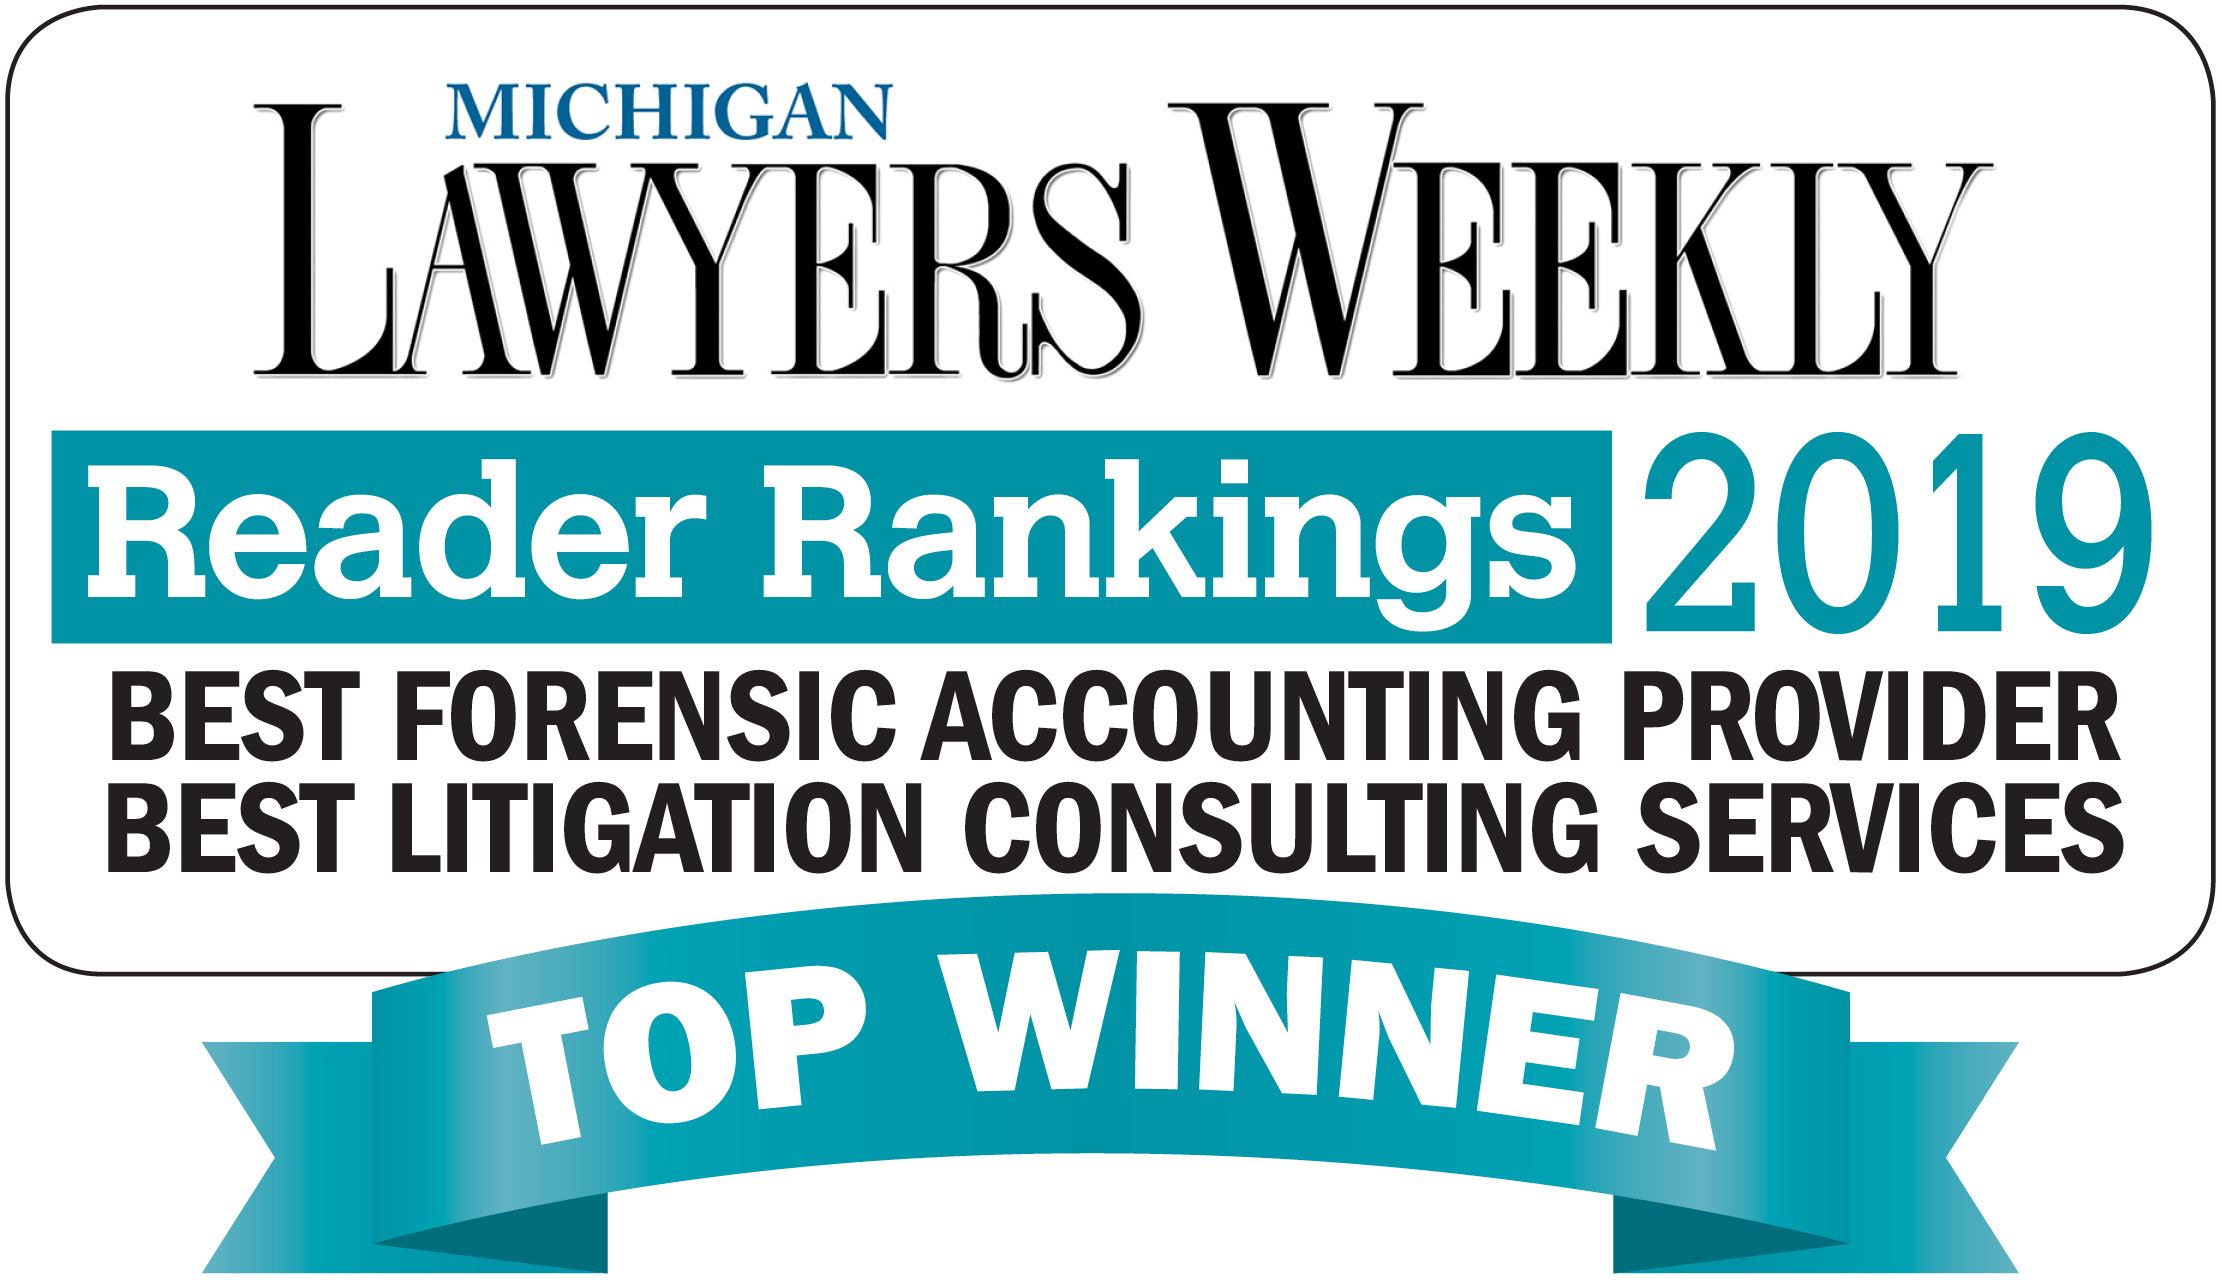 O'Keefe Named Best Litigation Consulting Services and Best Forensic Accounting Provider